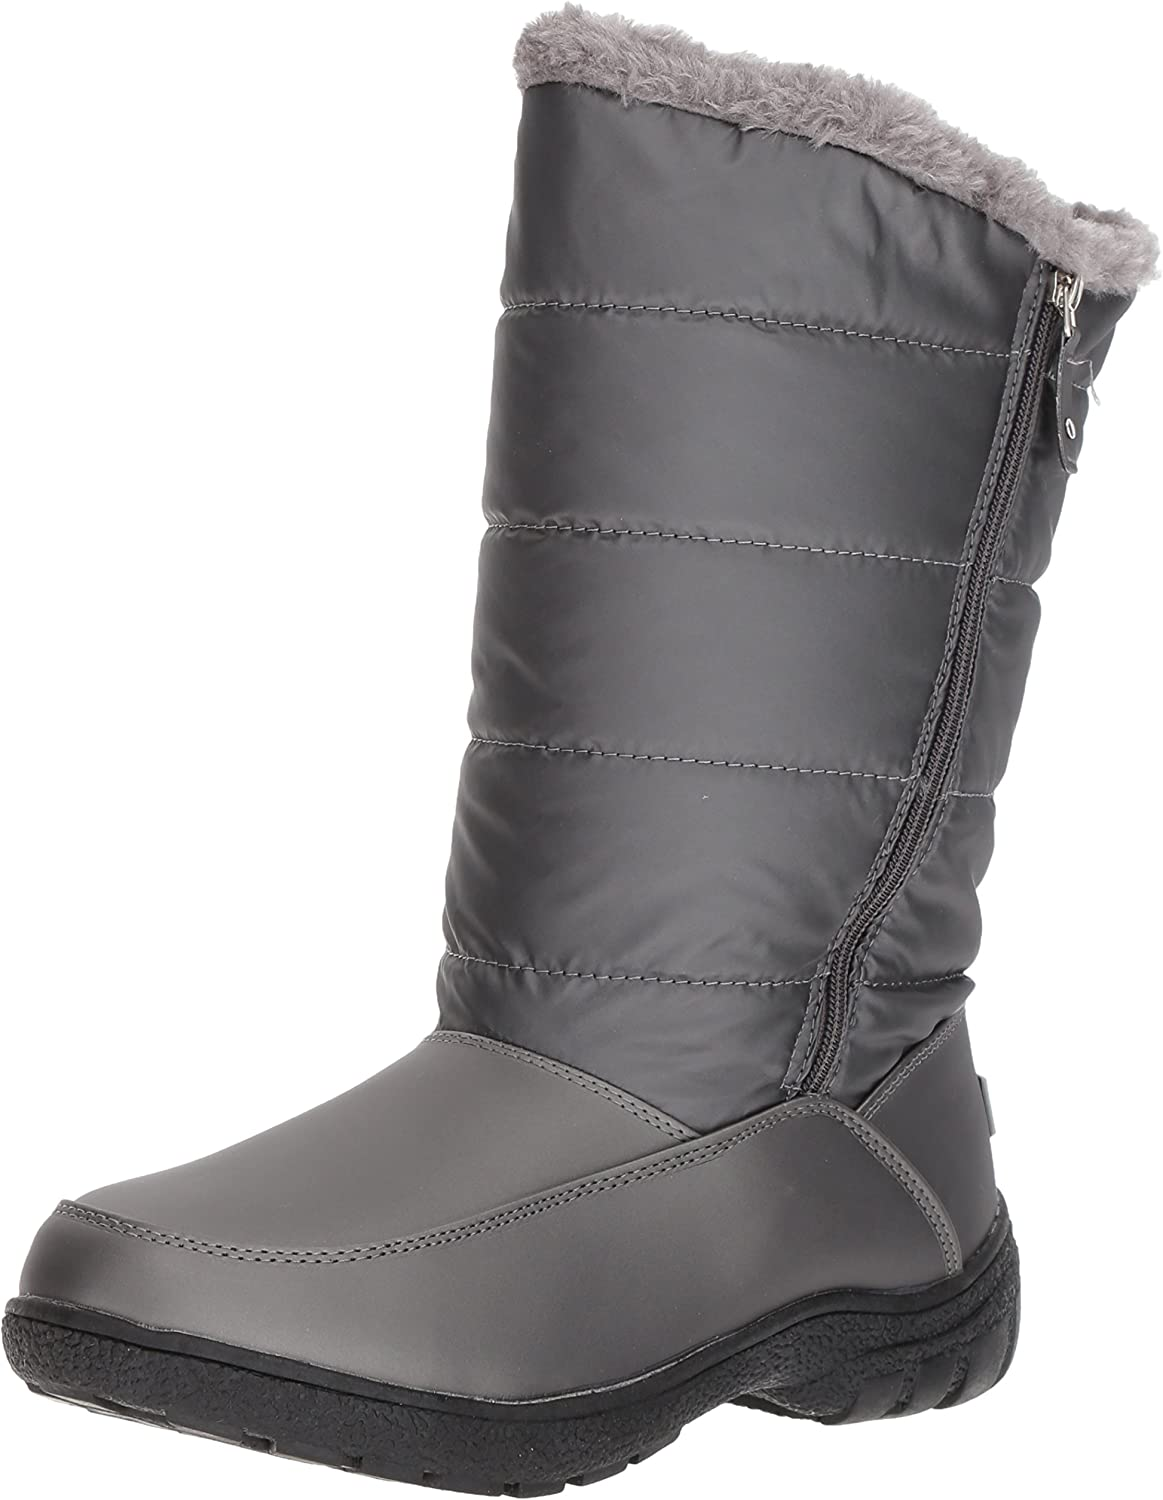 Sugar Womens Lucille Tall Shaft Faux Fur Waterproof Snow Winter Weather Snow Boot